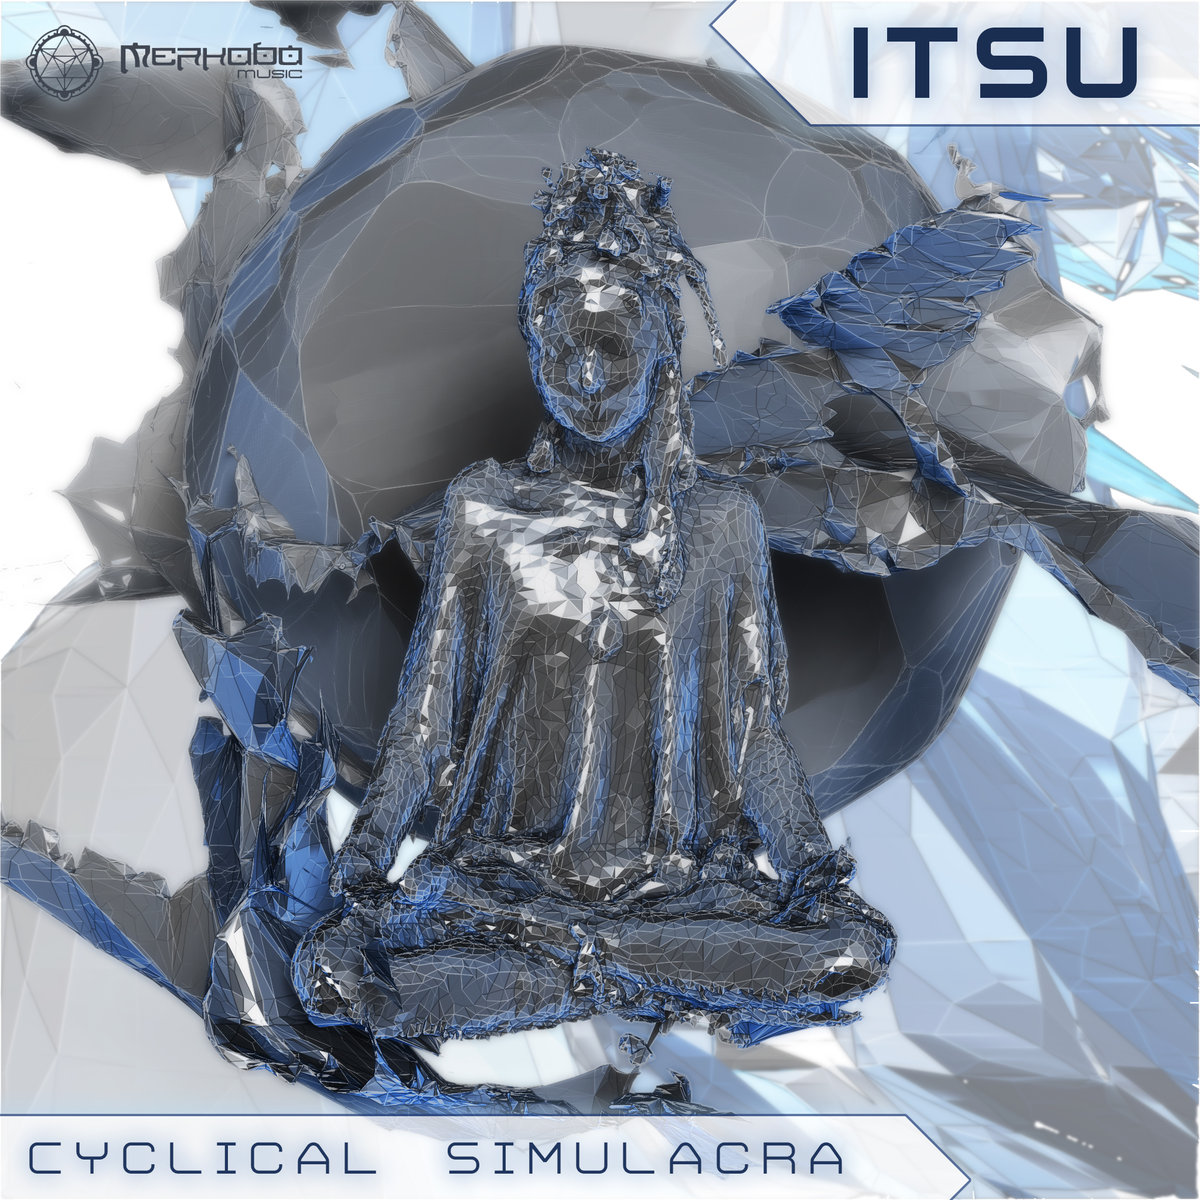 Itsu - Variegated @ 'Cyclical Simulacra' album (electronic, ambient)